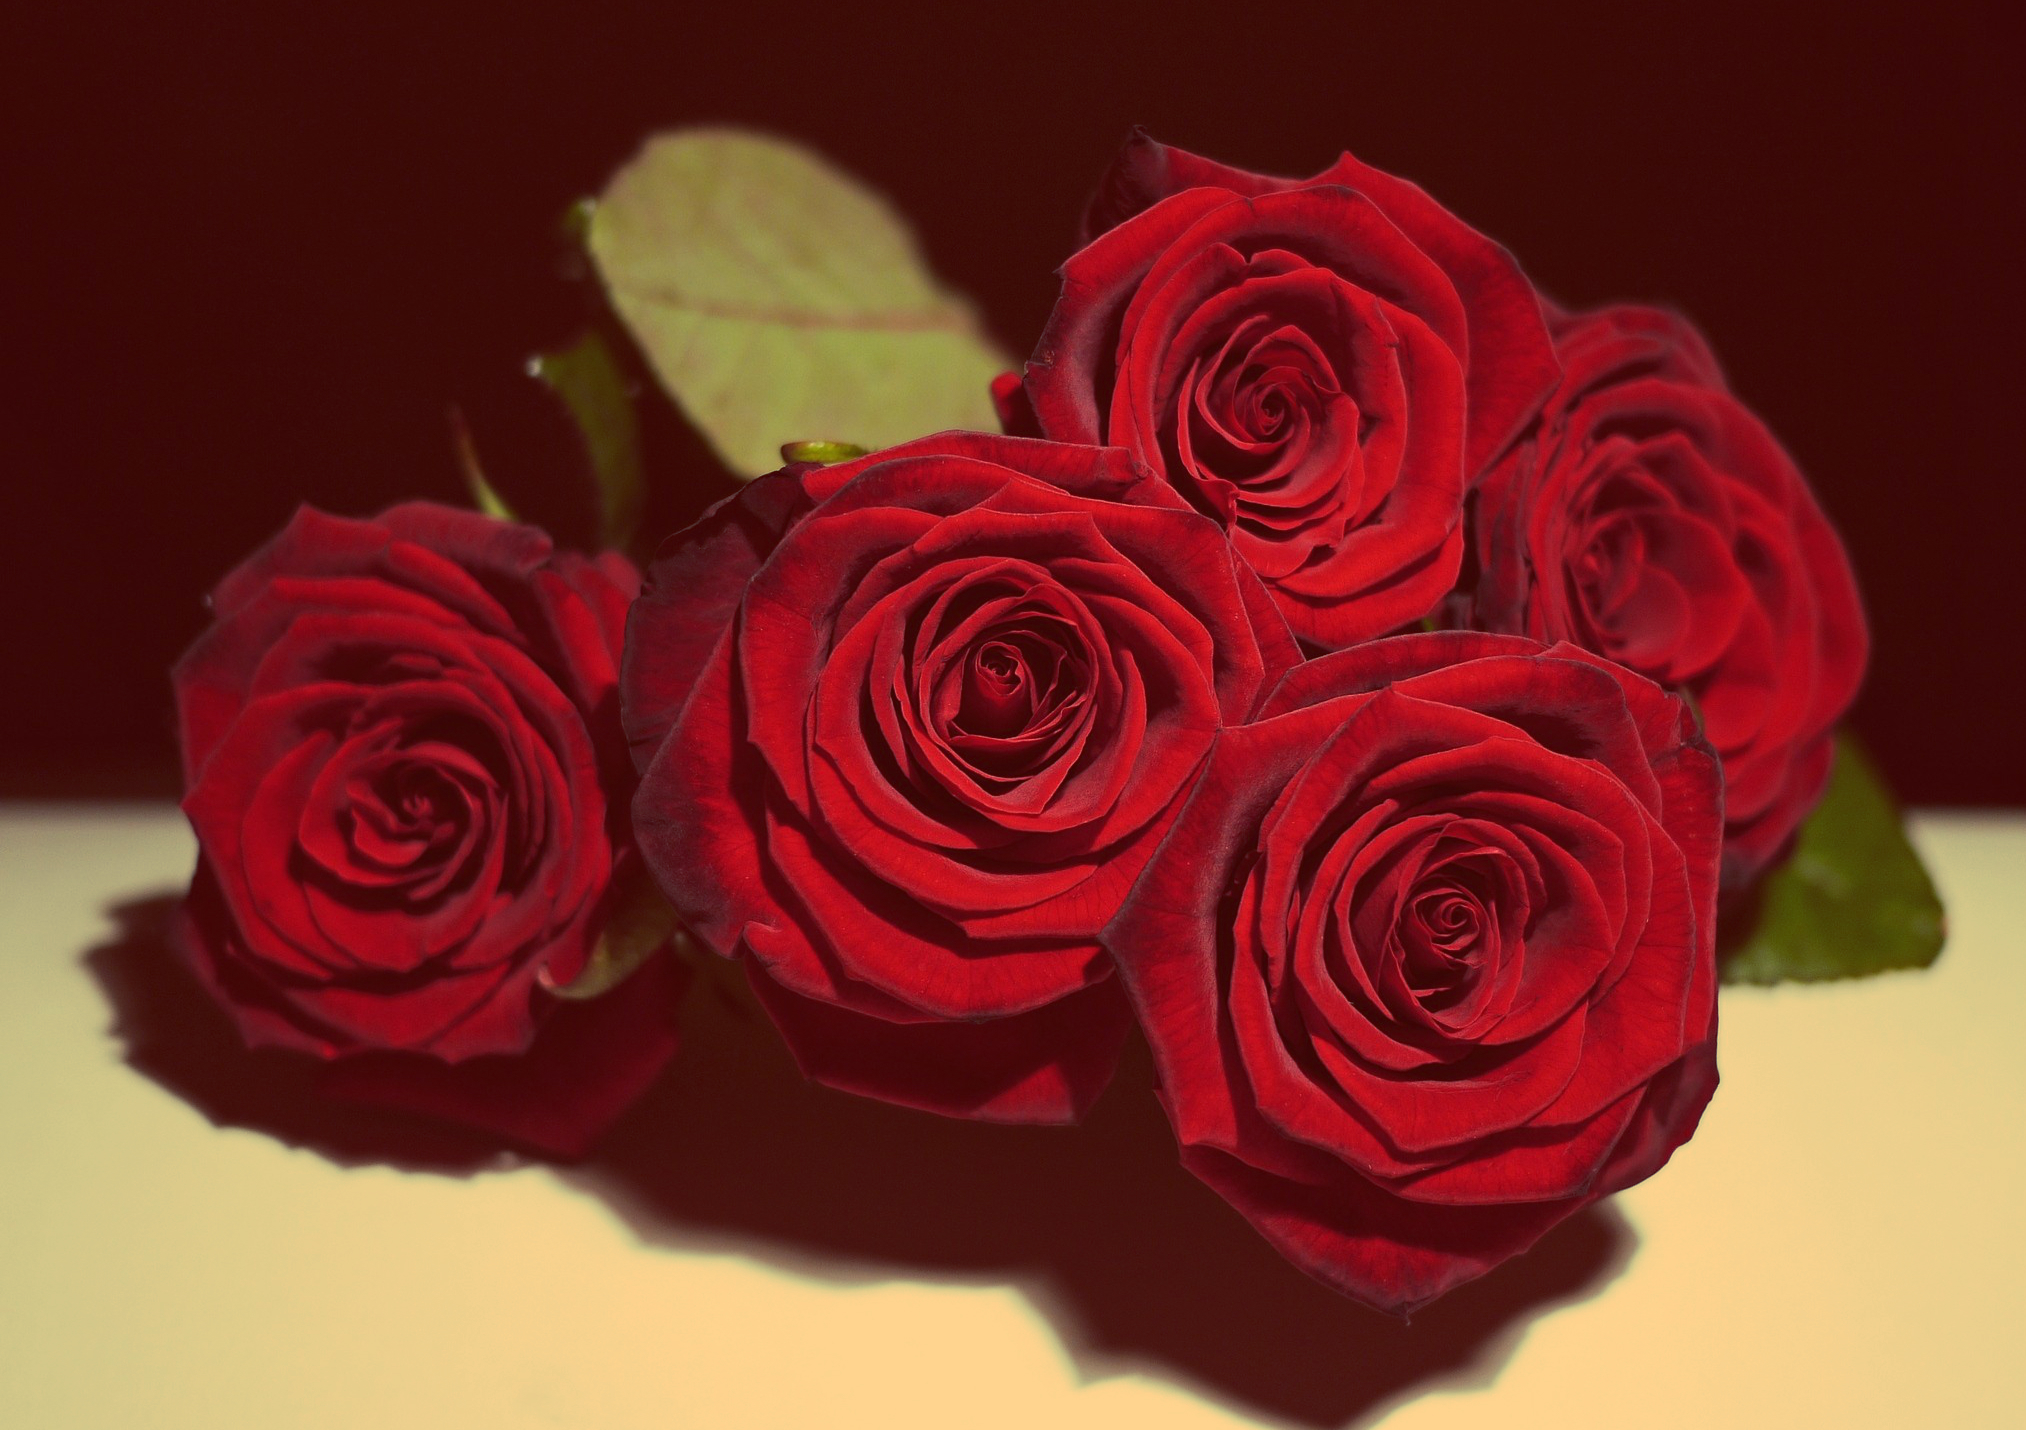 Red Rose Love Wallpaper